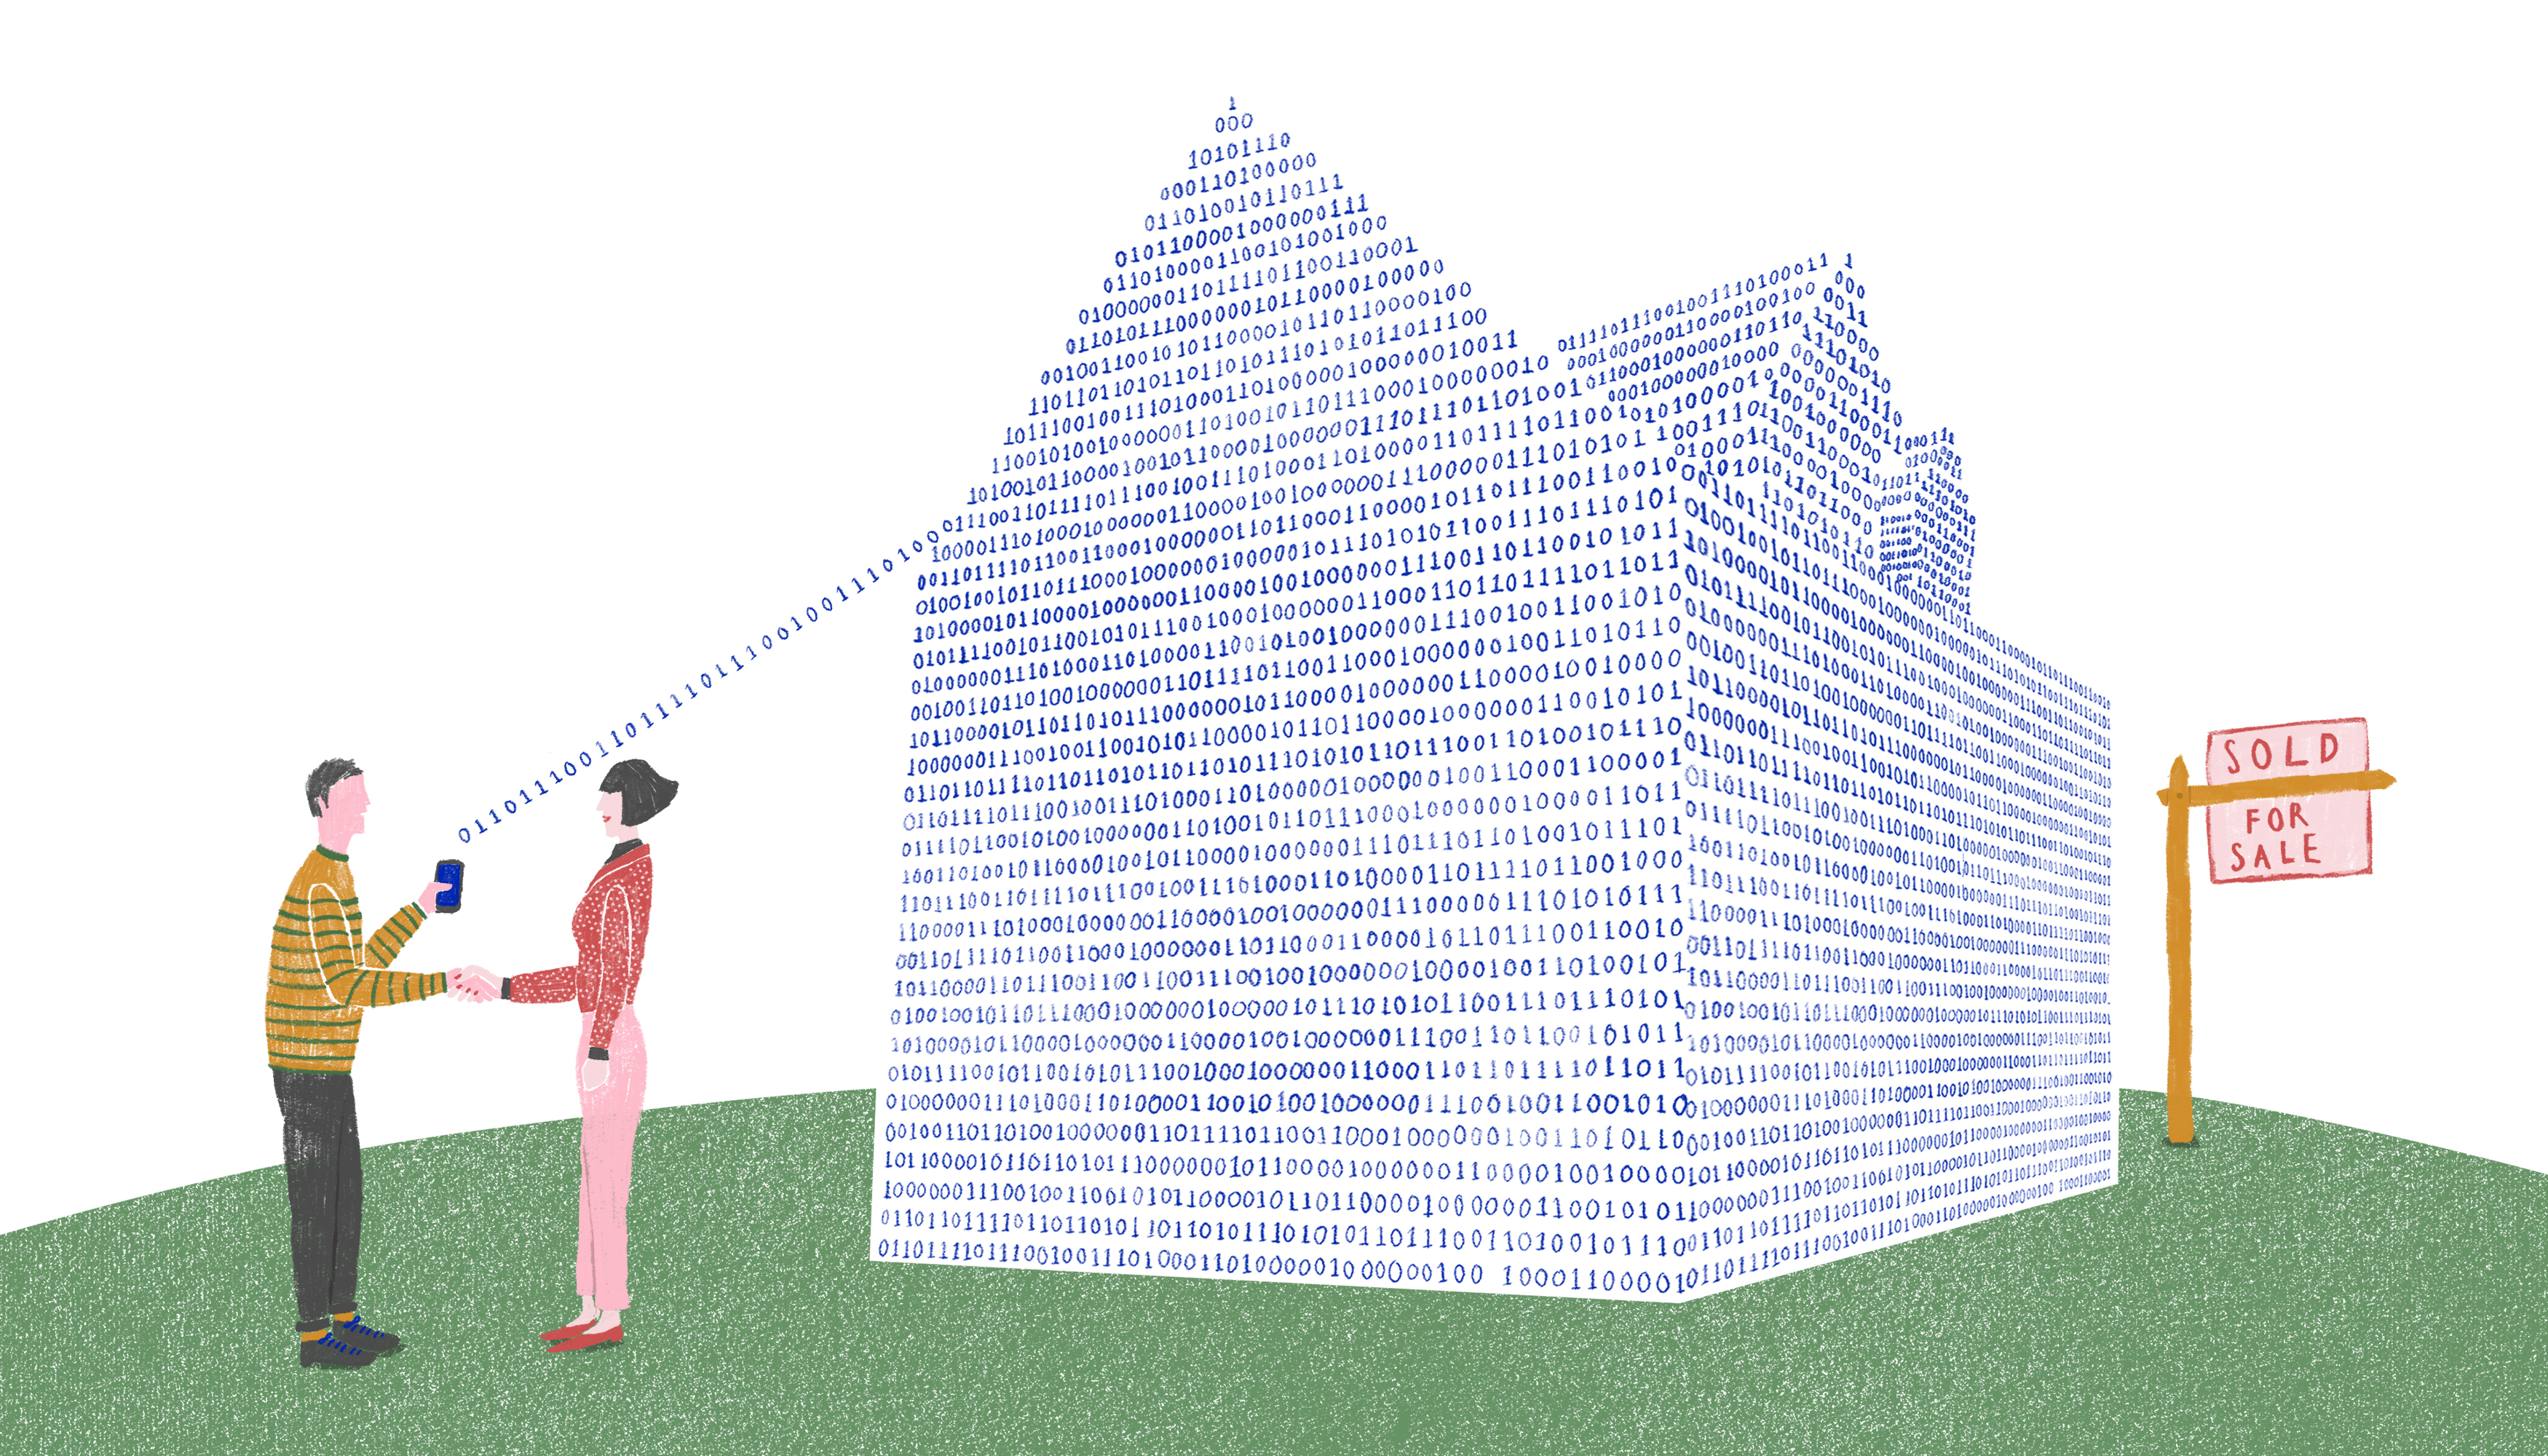 Buying real estate with bitcoin - Curbed